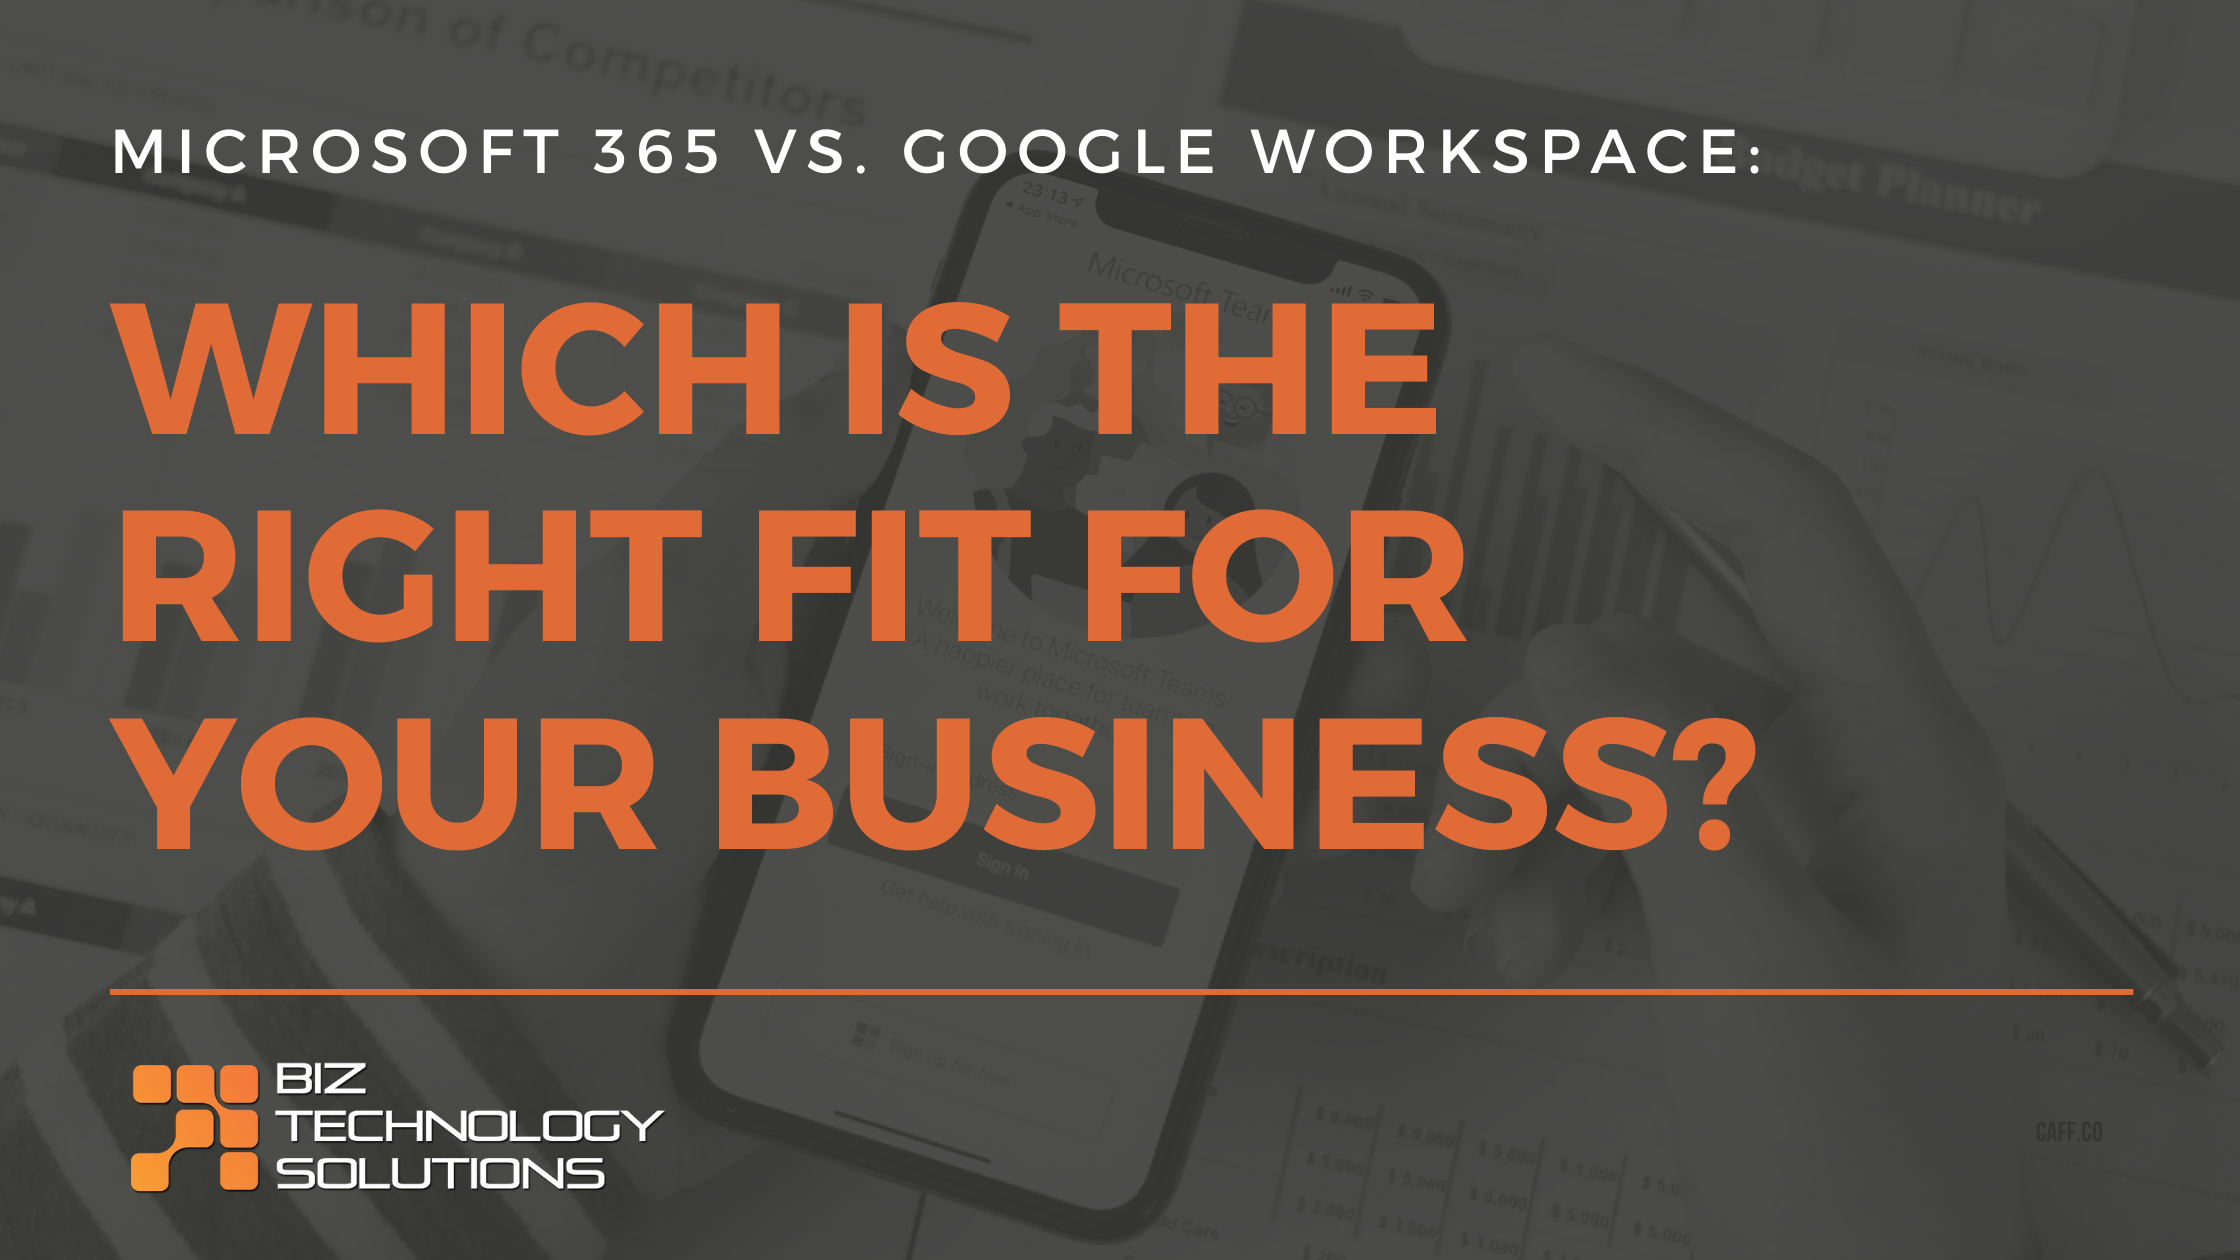 Microsoft 365 vs Google Workspace: Which Is the Right Fit for Your Business?